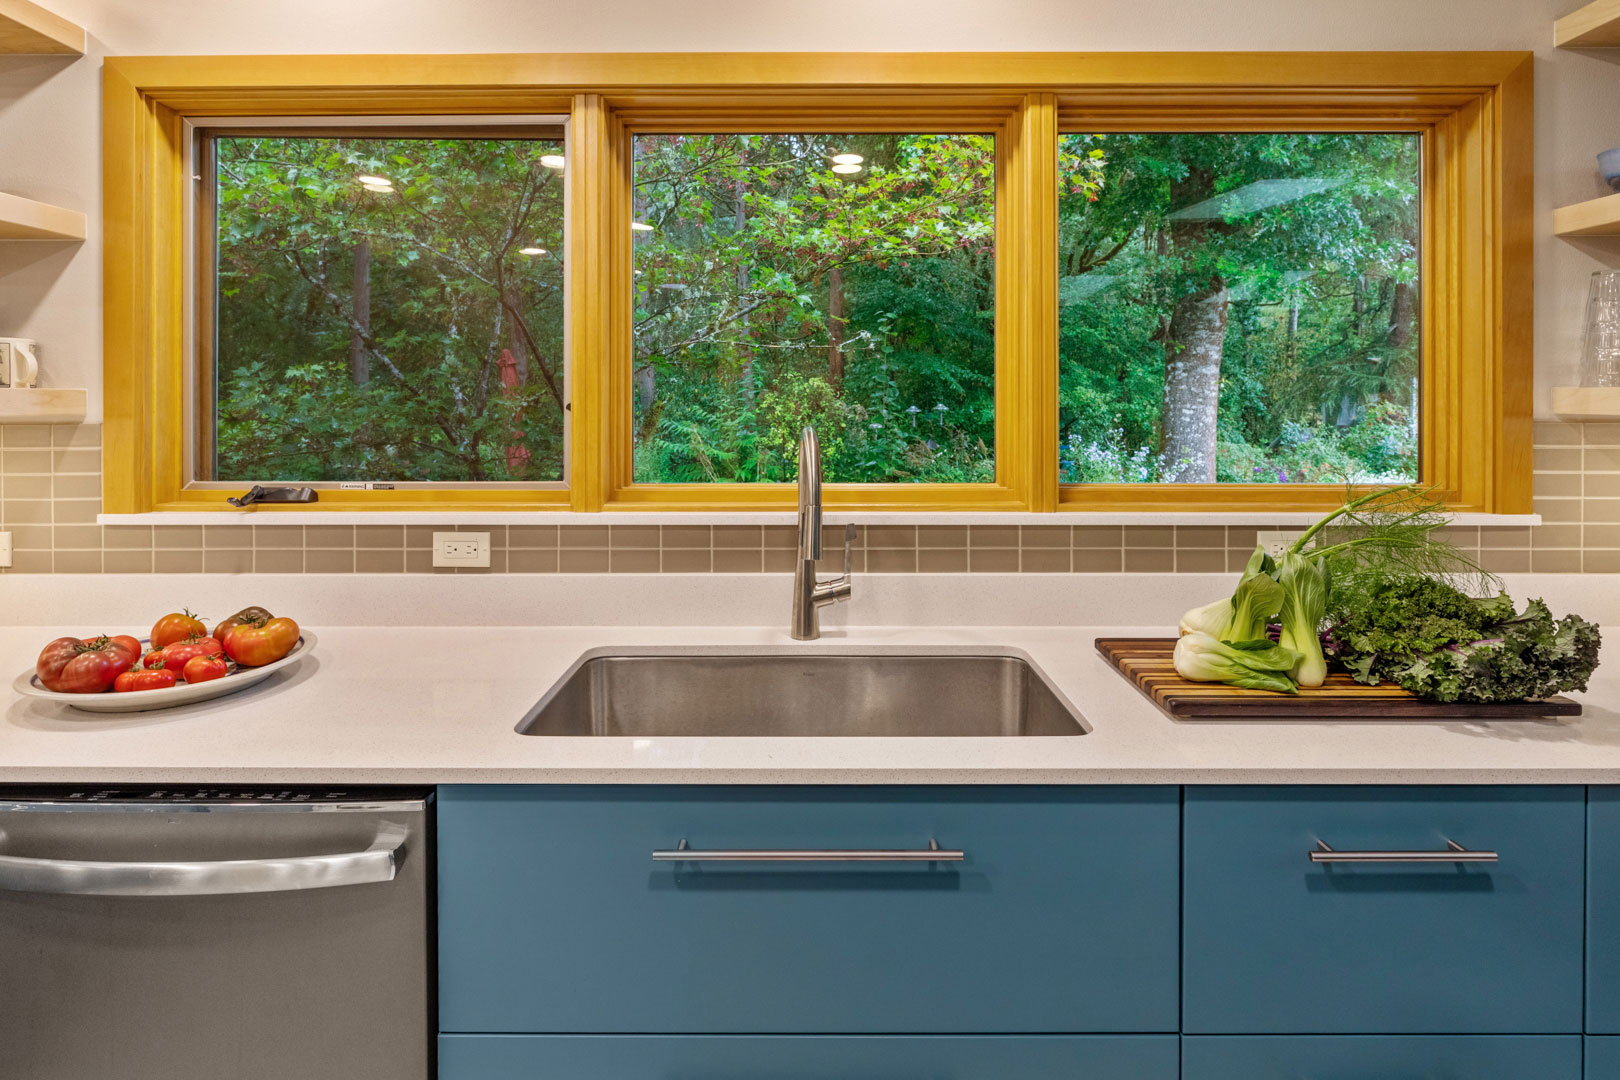 modern kitchen design - Henderer Design + Build, Corvallis OR